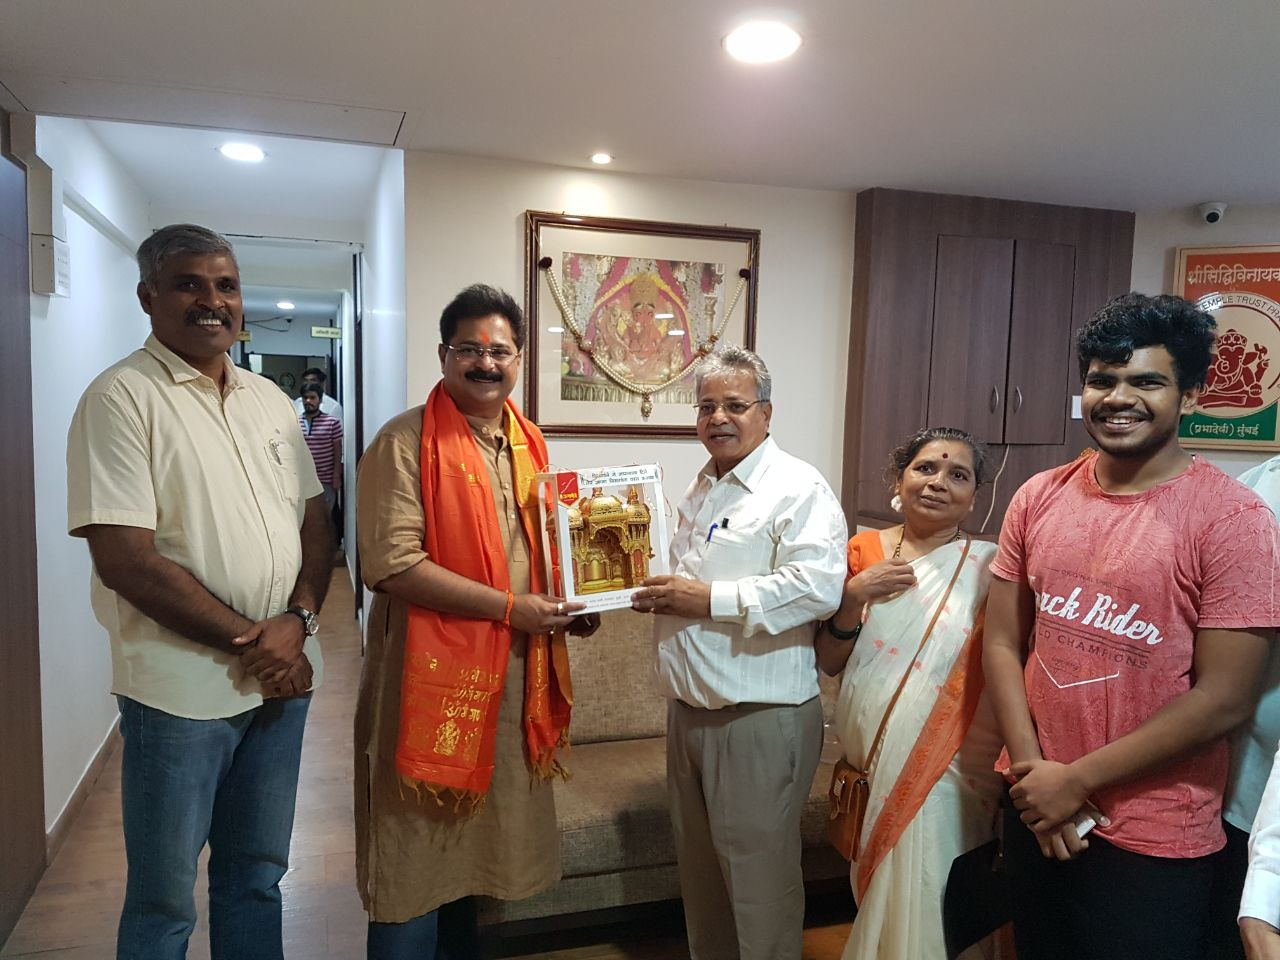 ADESH-BANDEKAR-SANJEEV-PATIL-SIDDHIVINAYAK-TEMPLE